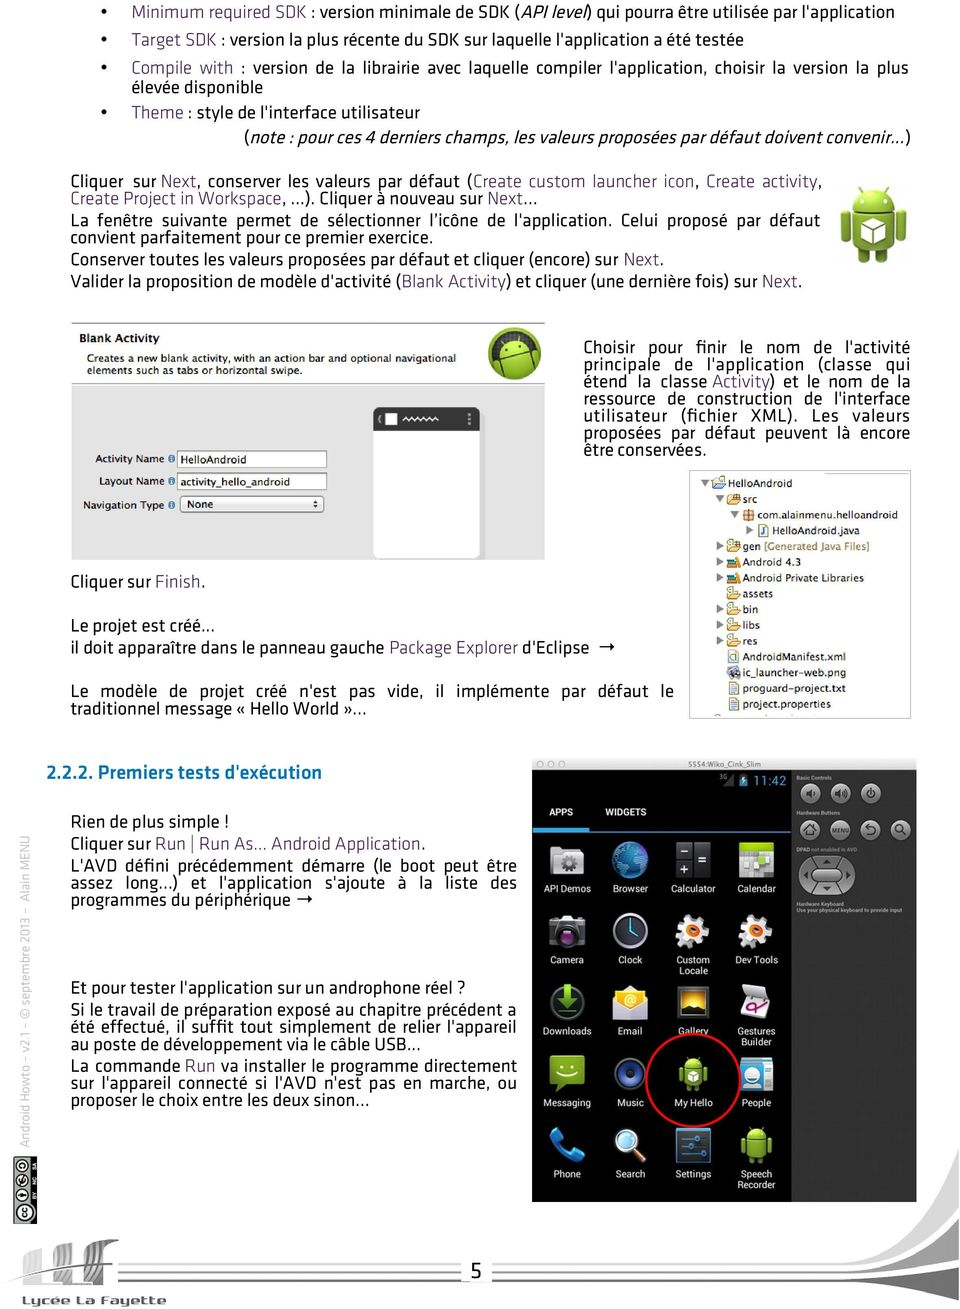 proposées par défaut doivent convenir... ) Cliquer sur Next, conserver les valeurs par défaut (Create custom launcher icon, Create activity, Create Project in Workspace, ). Cliquer à nouveau sur Next.